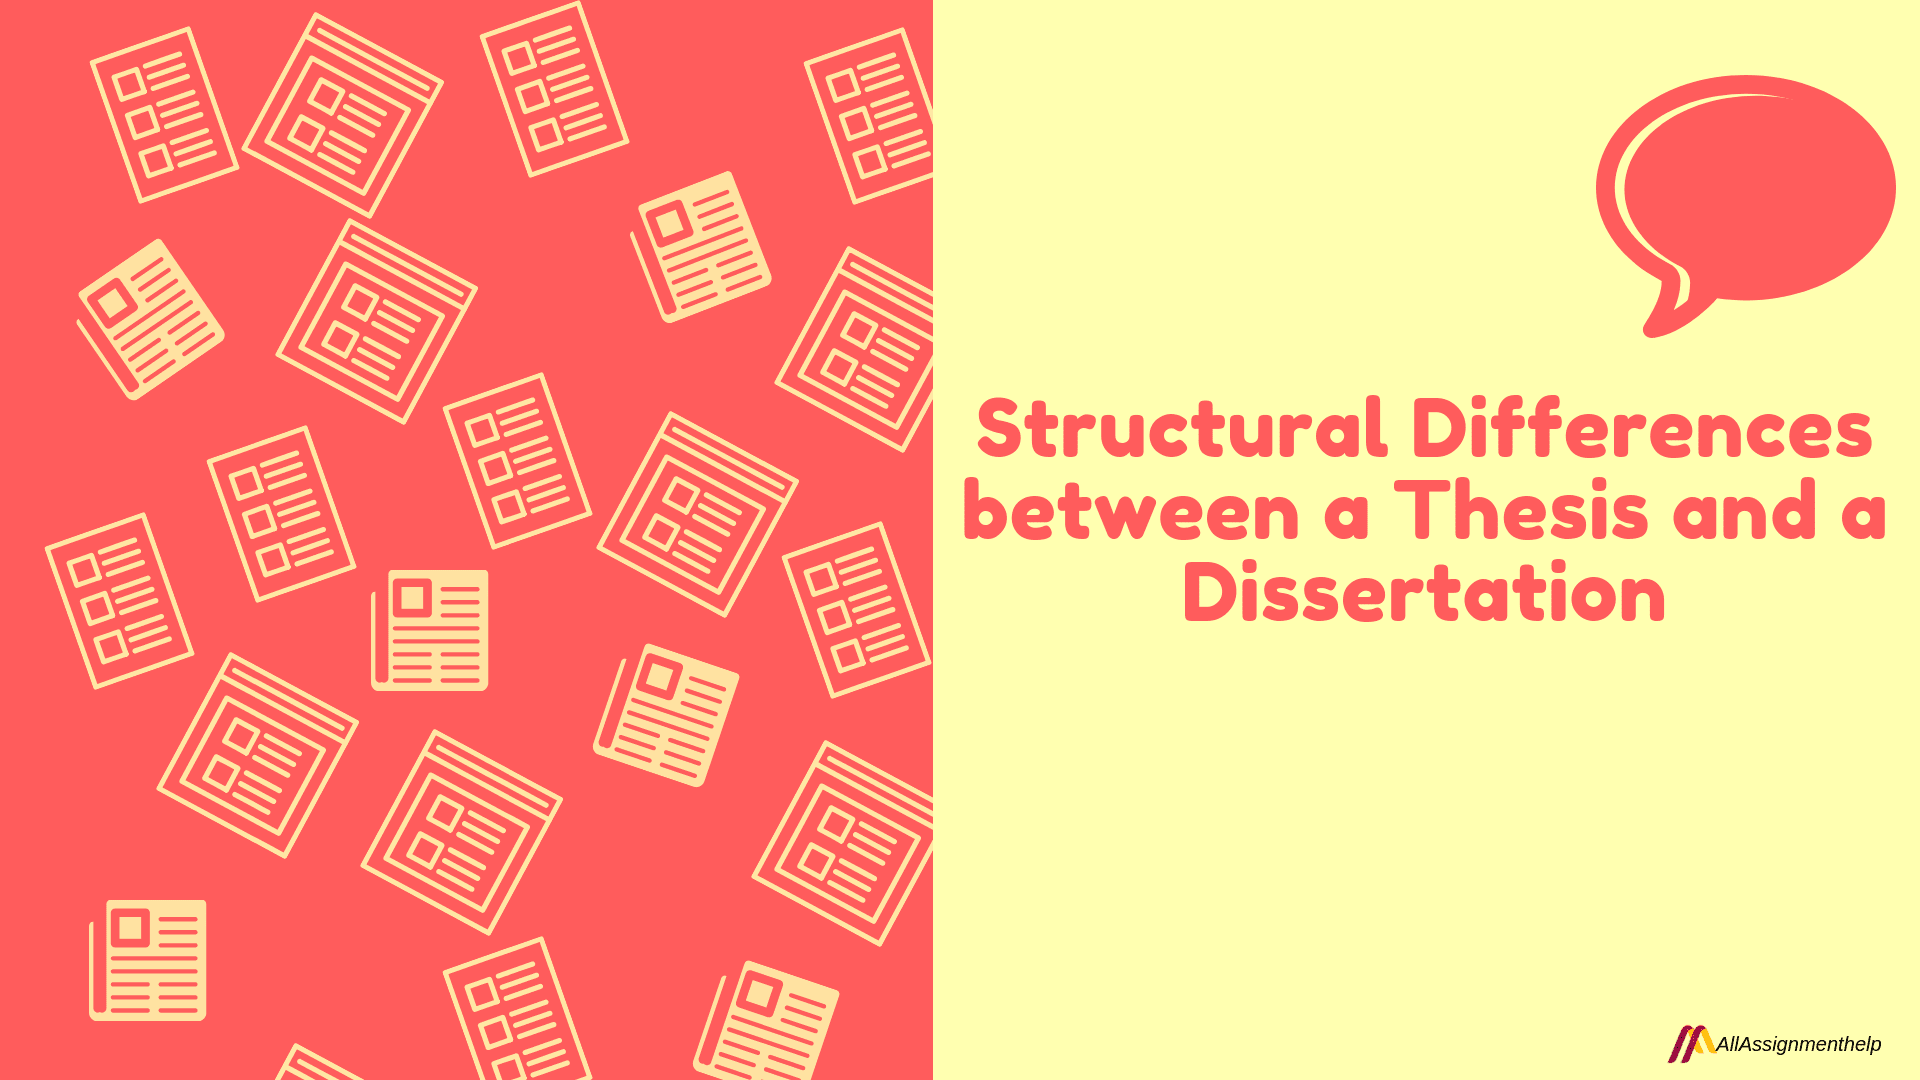 How is a Dissertation Different From a Thesis?